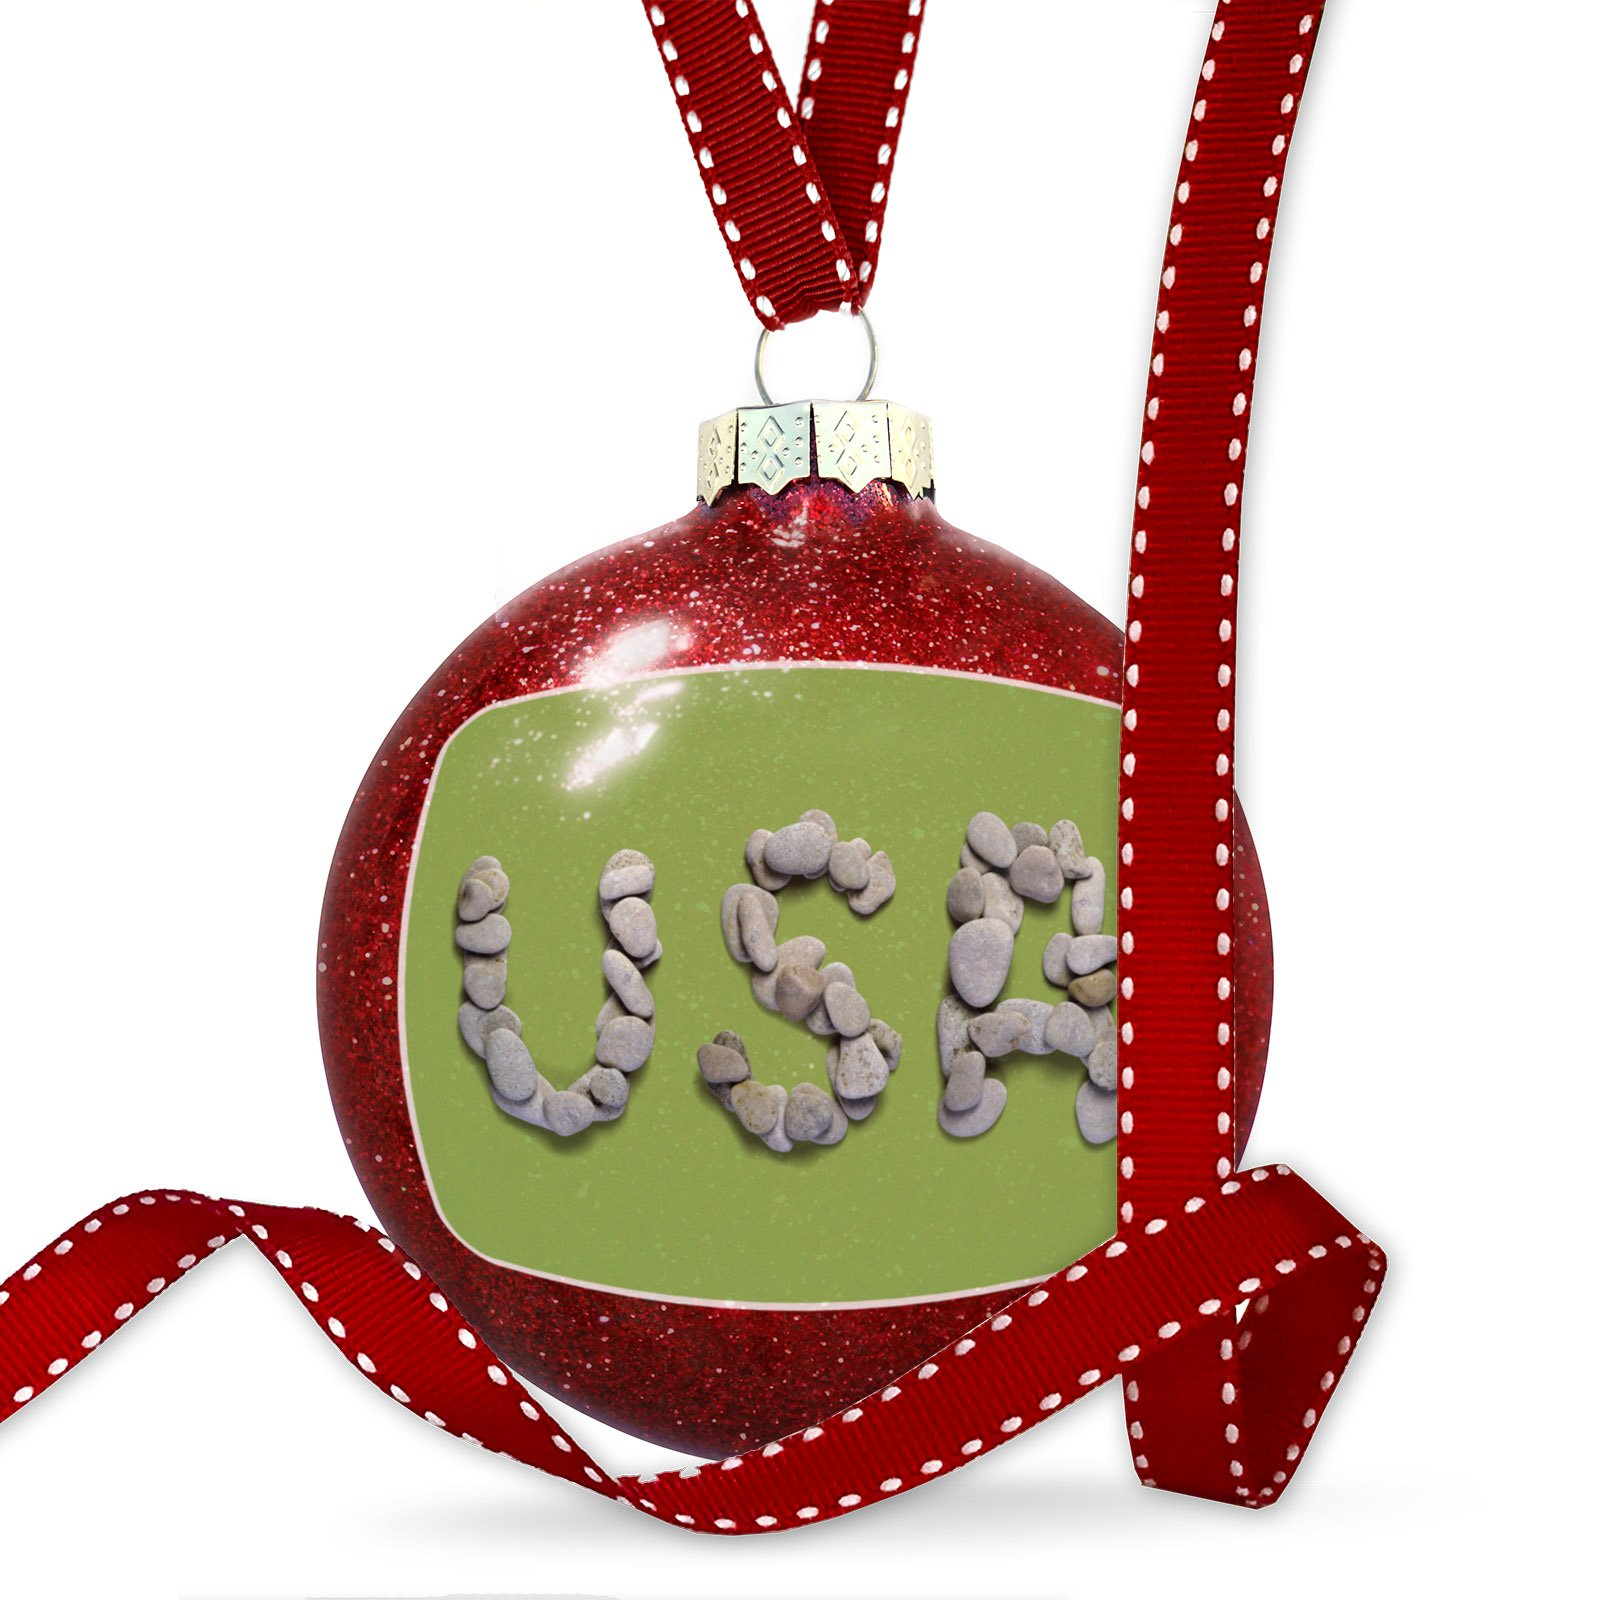 Christmas Decoration United States of America Spa Stones Ornament